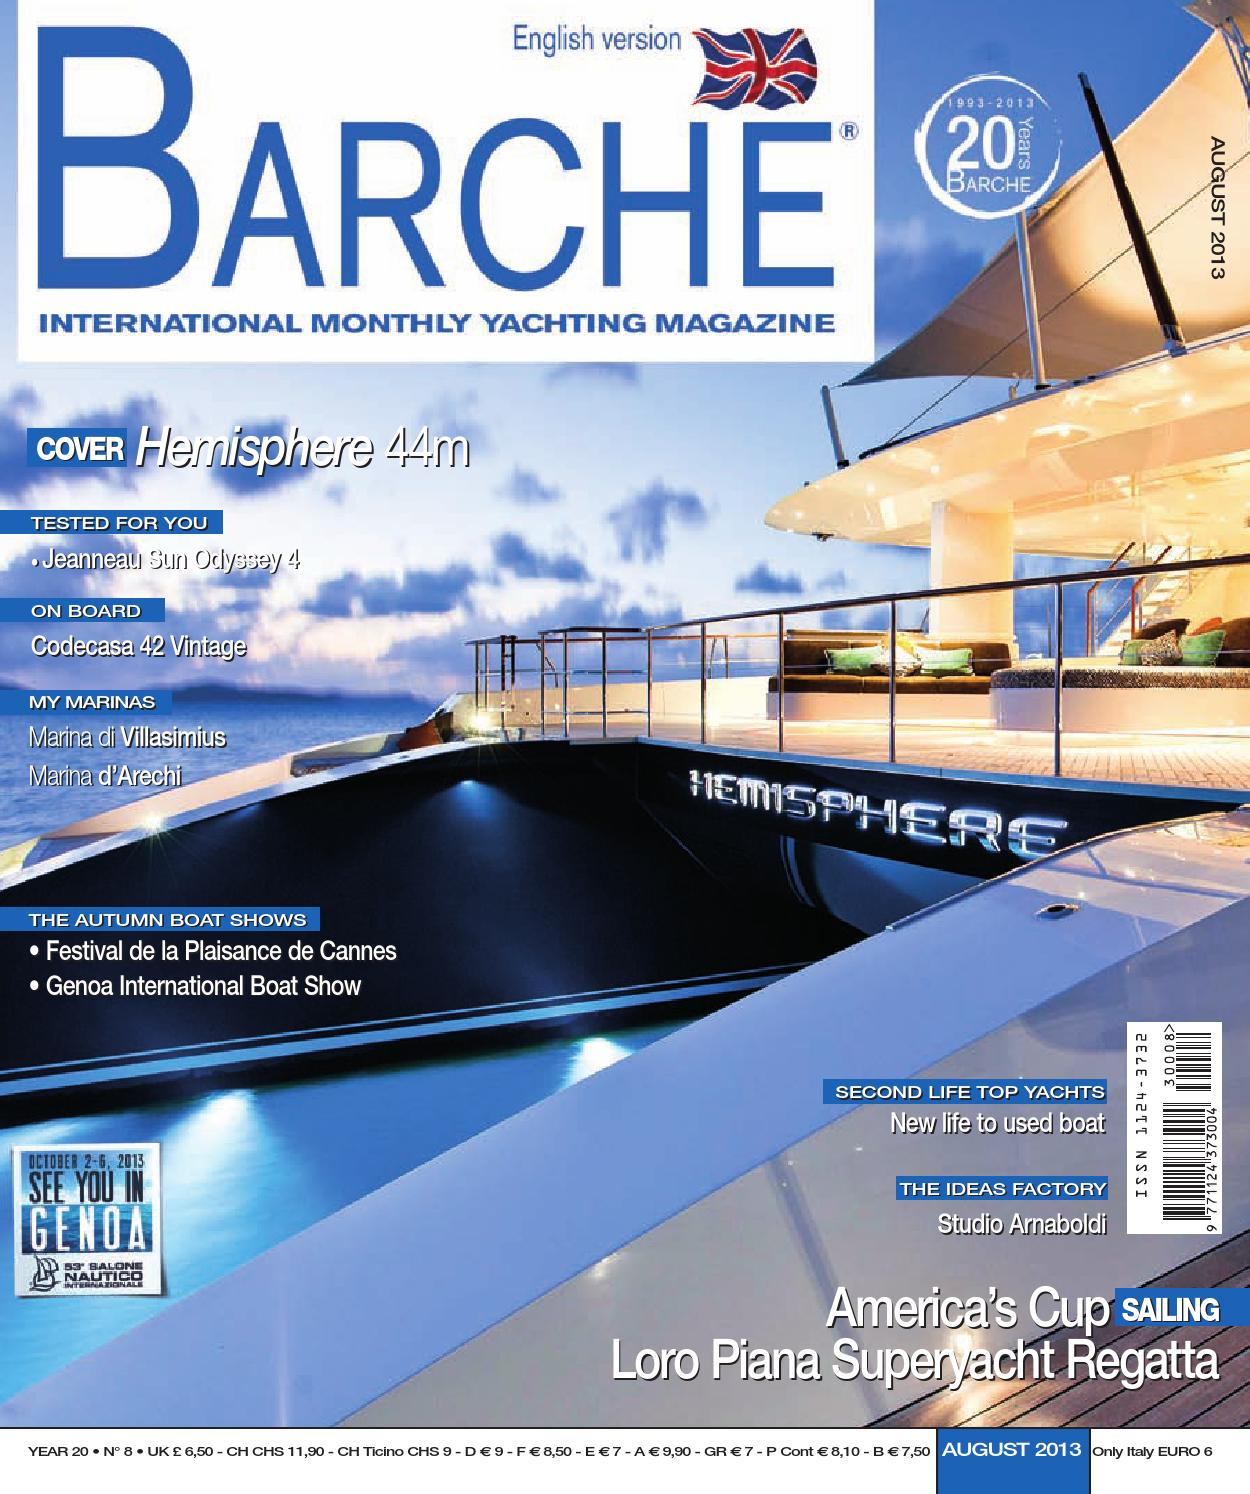 BARCHE August 2013 EN Edition by INTERNATIONAL SEA PRESS SRL